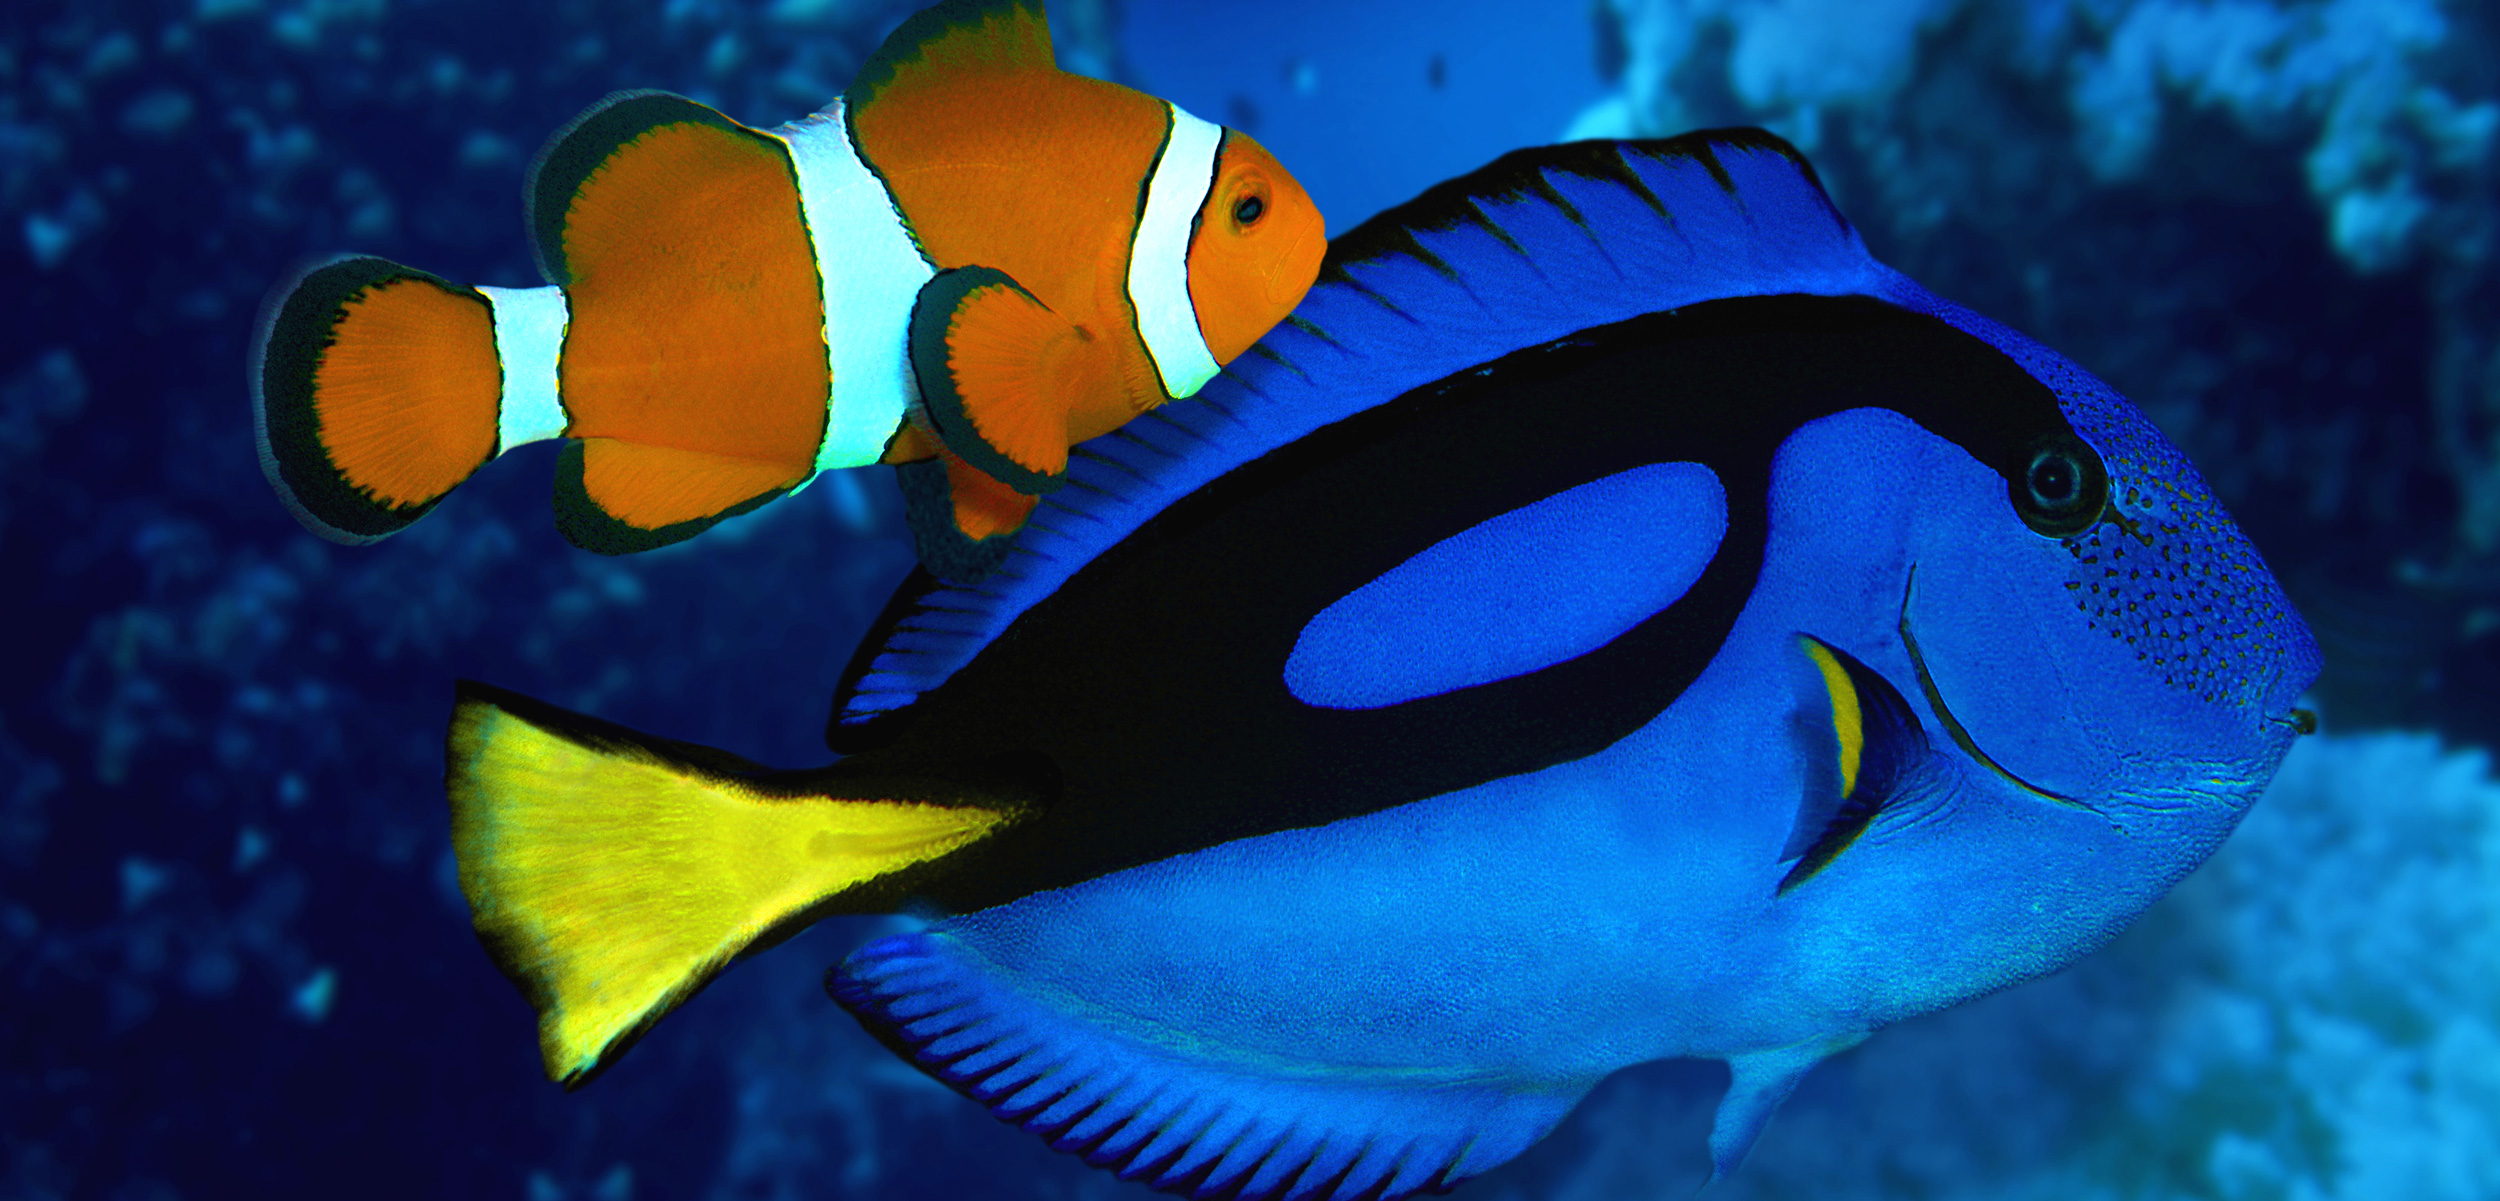 Clownfish and blue tangs are the real-life inspiration for the characters Nemo and Dory in the films, Finding Nemo and the forthcoming Finding Dory. The release of Finding Nemo saw a spike in the aquarium trade for clownfish, and researchers are anticipating the same situation after Finding Dory launches. Photo by Juniors Bildarchiv GmbH/Alamy Stock Photo